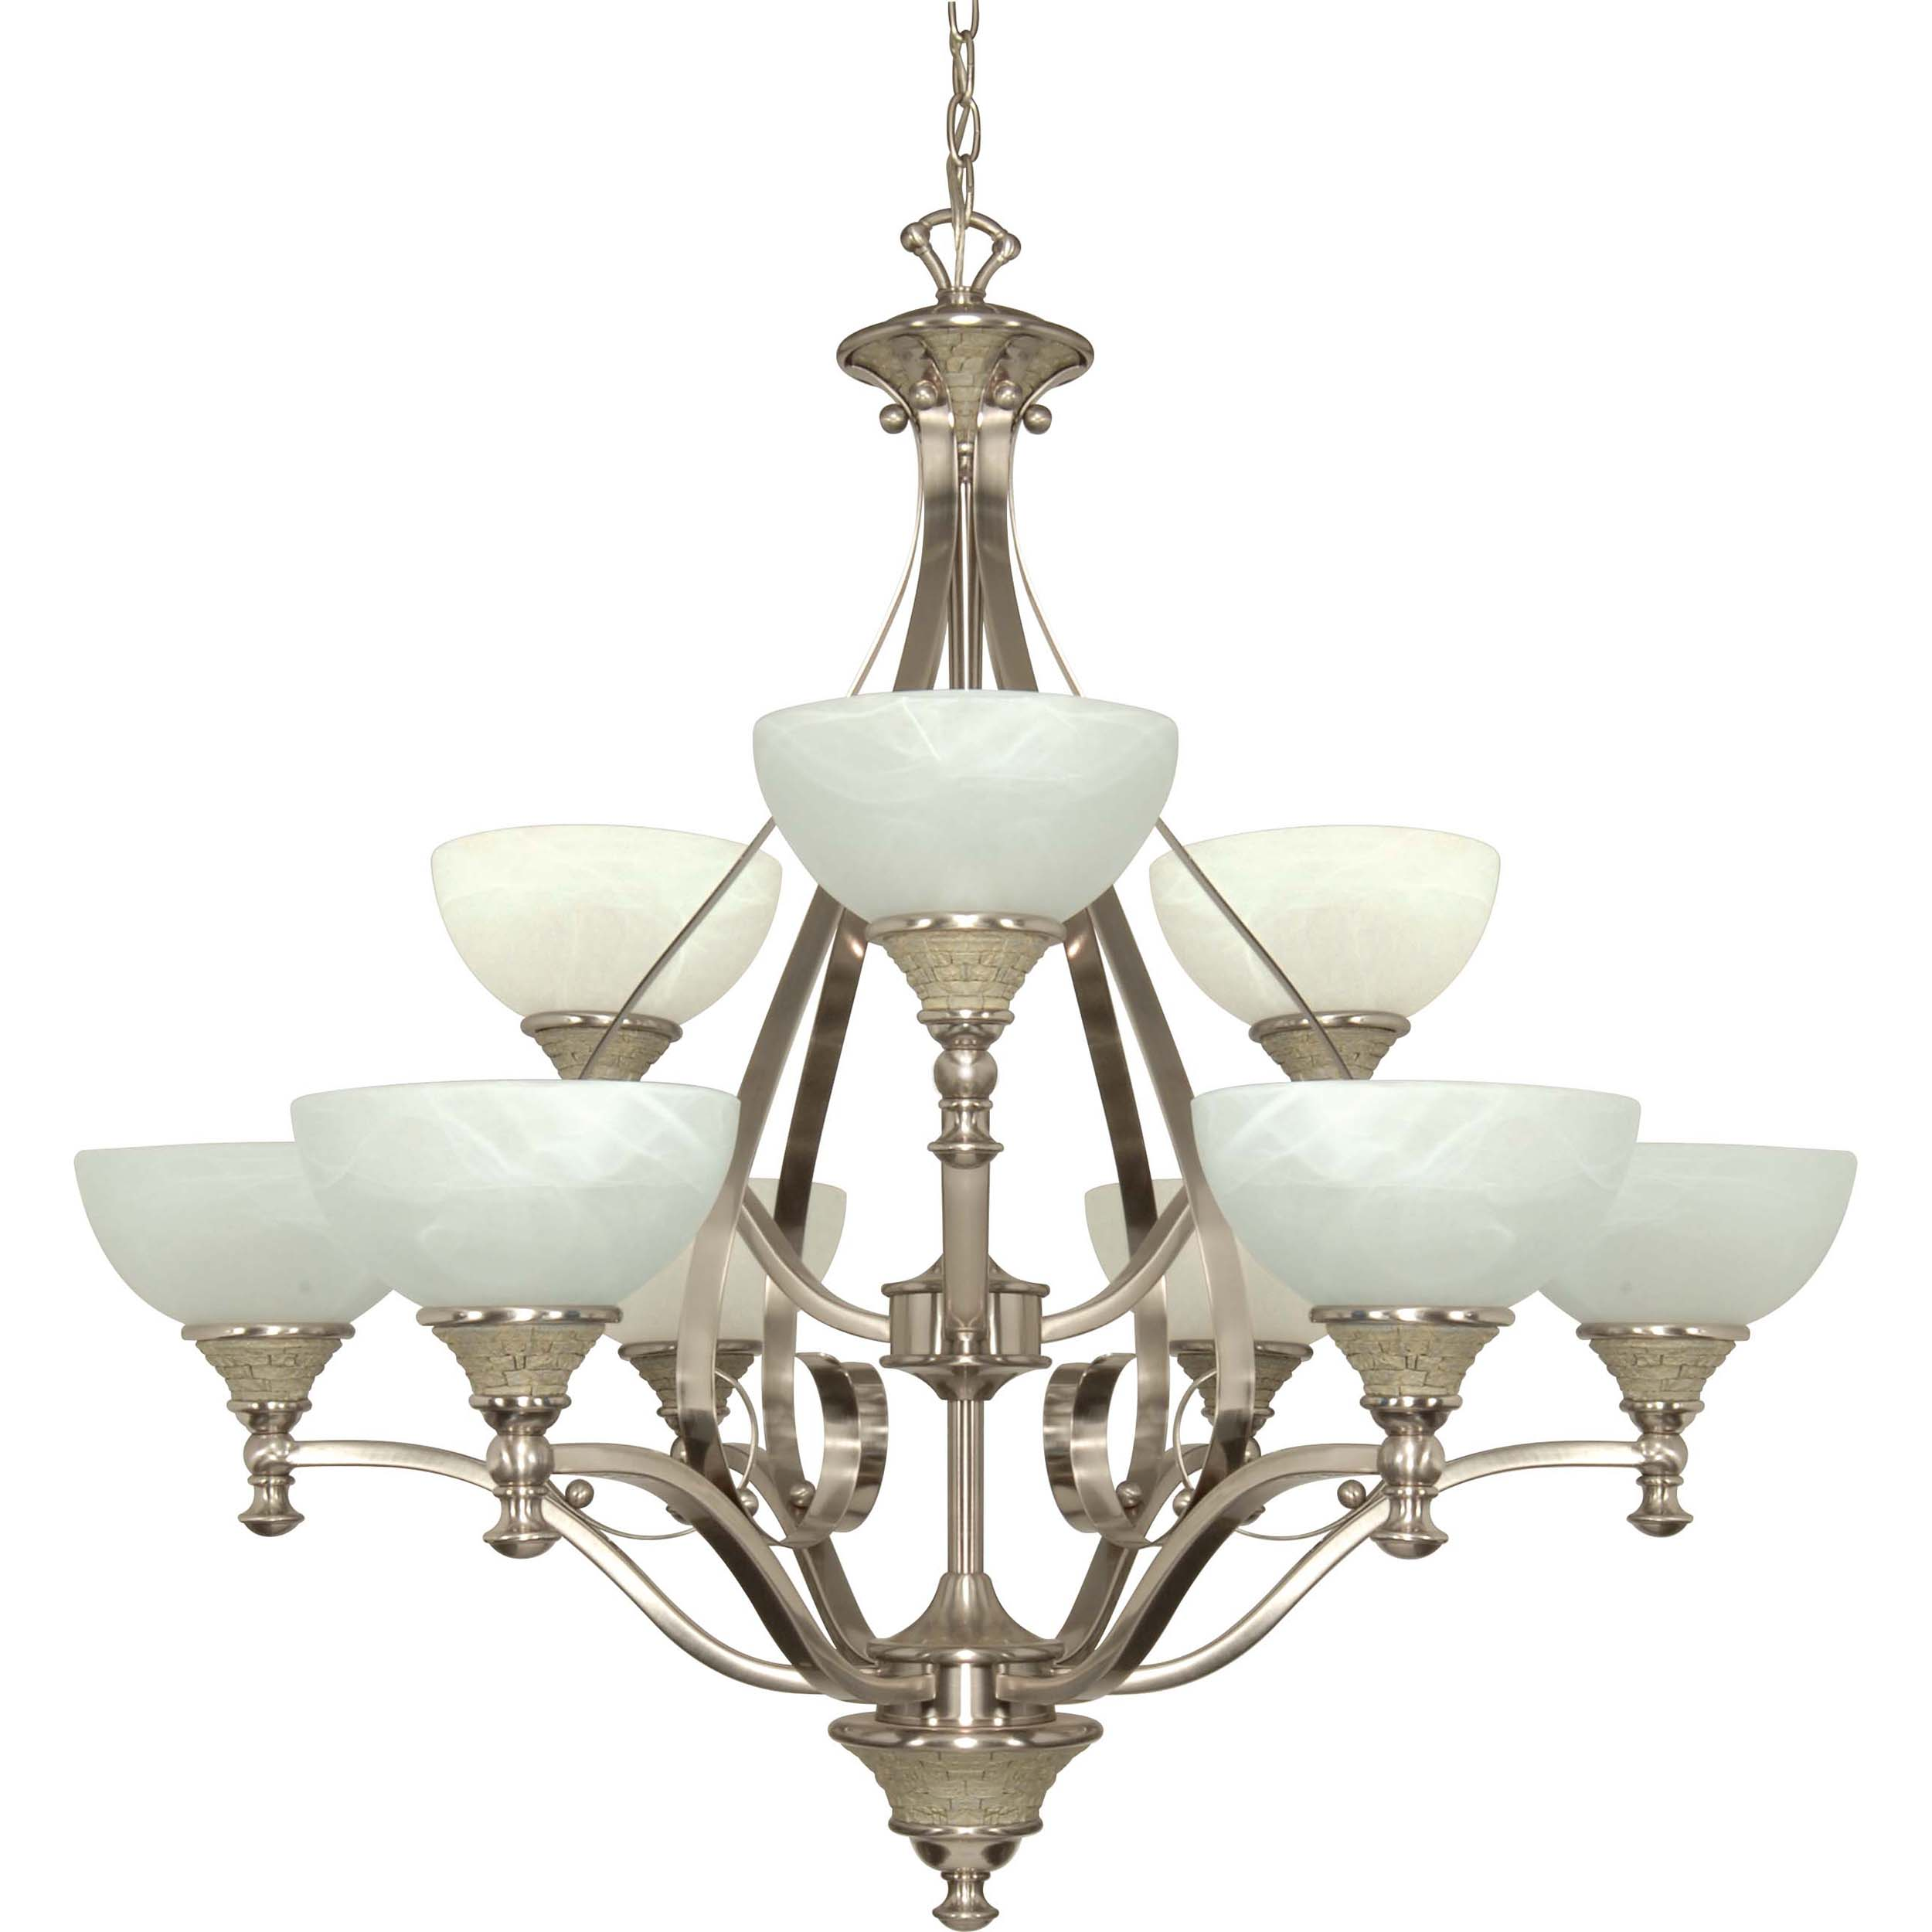 Rockport Milano Alabaster Swirl Glass Brushed Nickel 9-light Chandelier